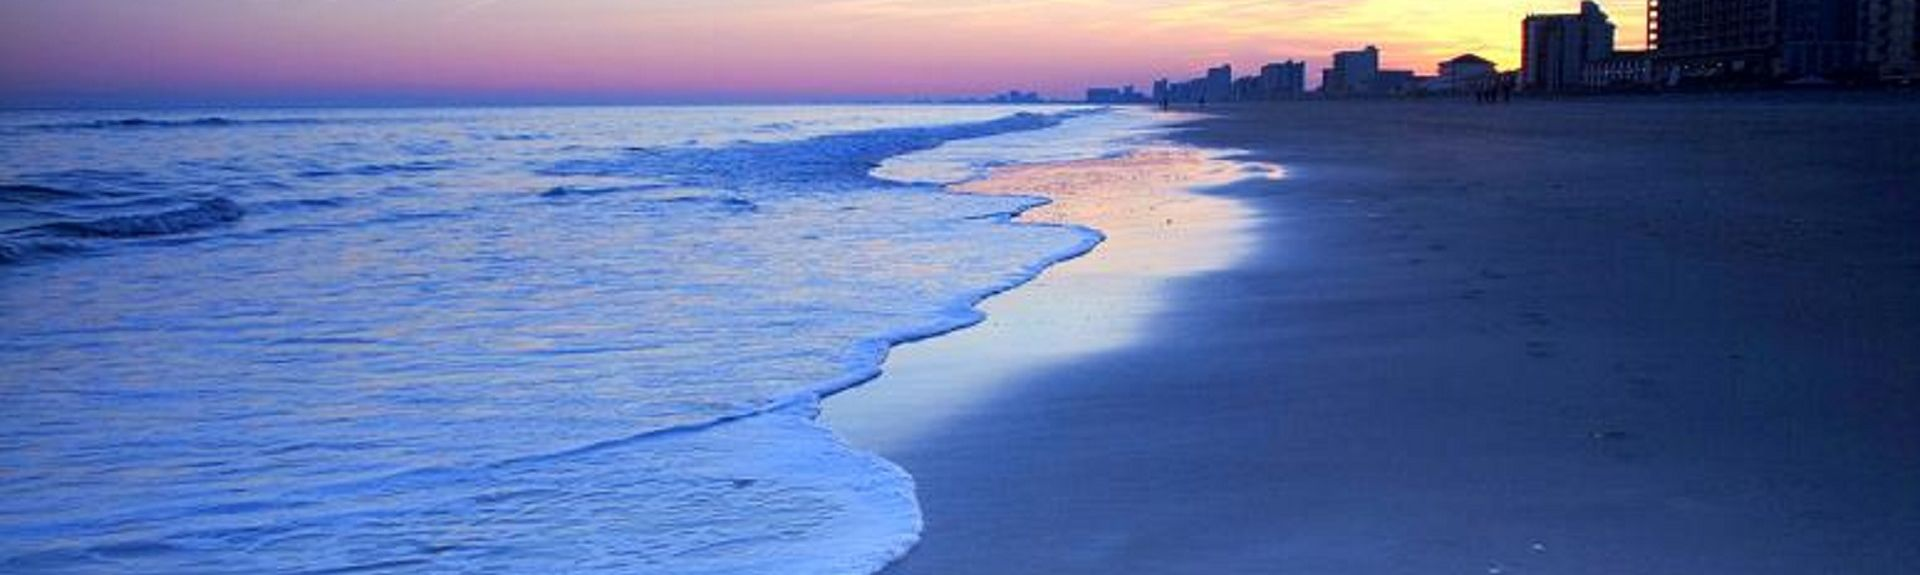 Boardwalk Beach Resort, Myrtle Beach, SC, USA